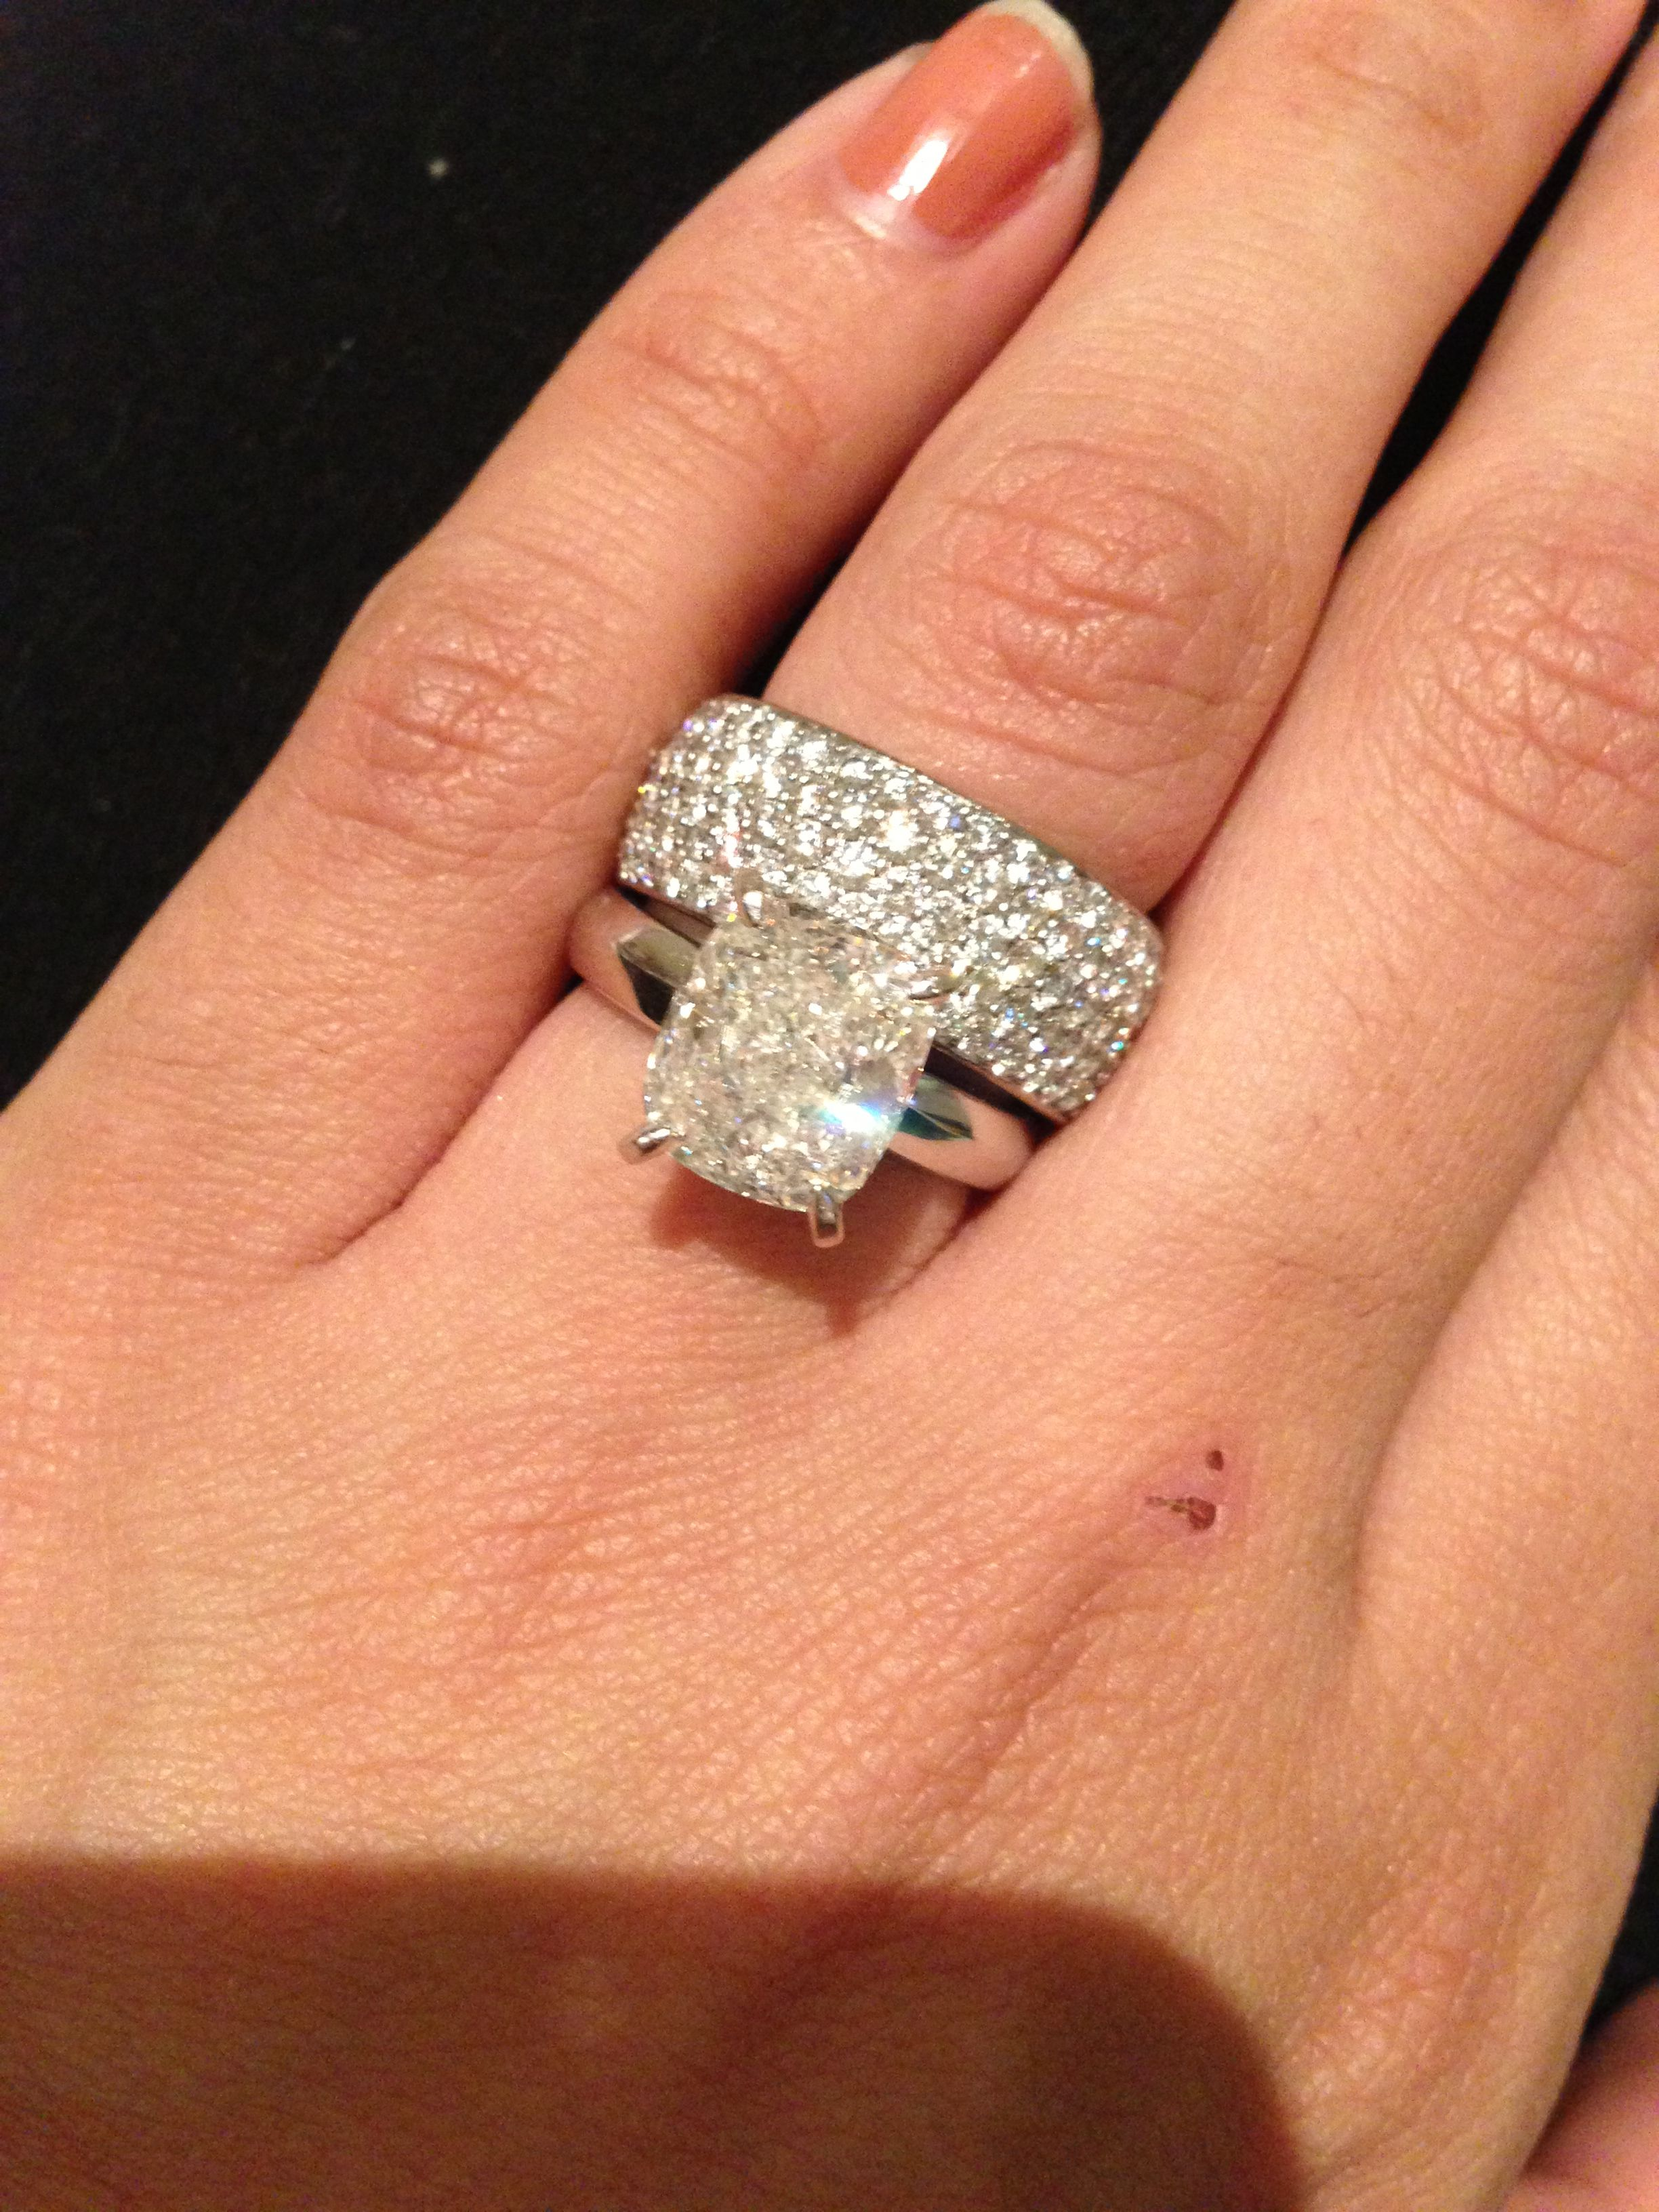 My Wedding Set Tiffany Engagement Ring 35 Carats Cartier Diamond Band 2